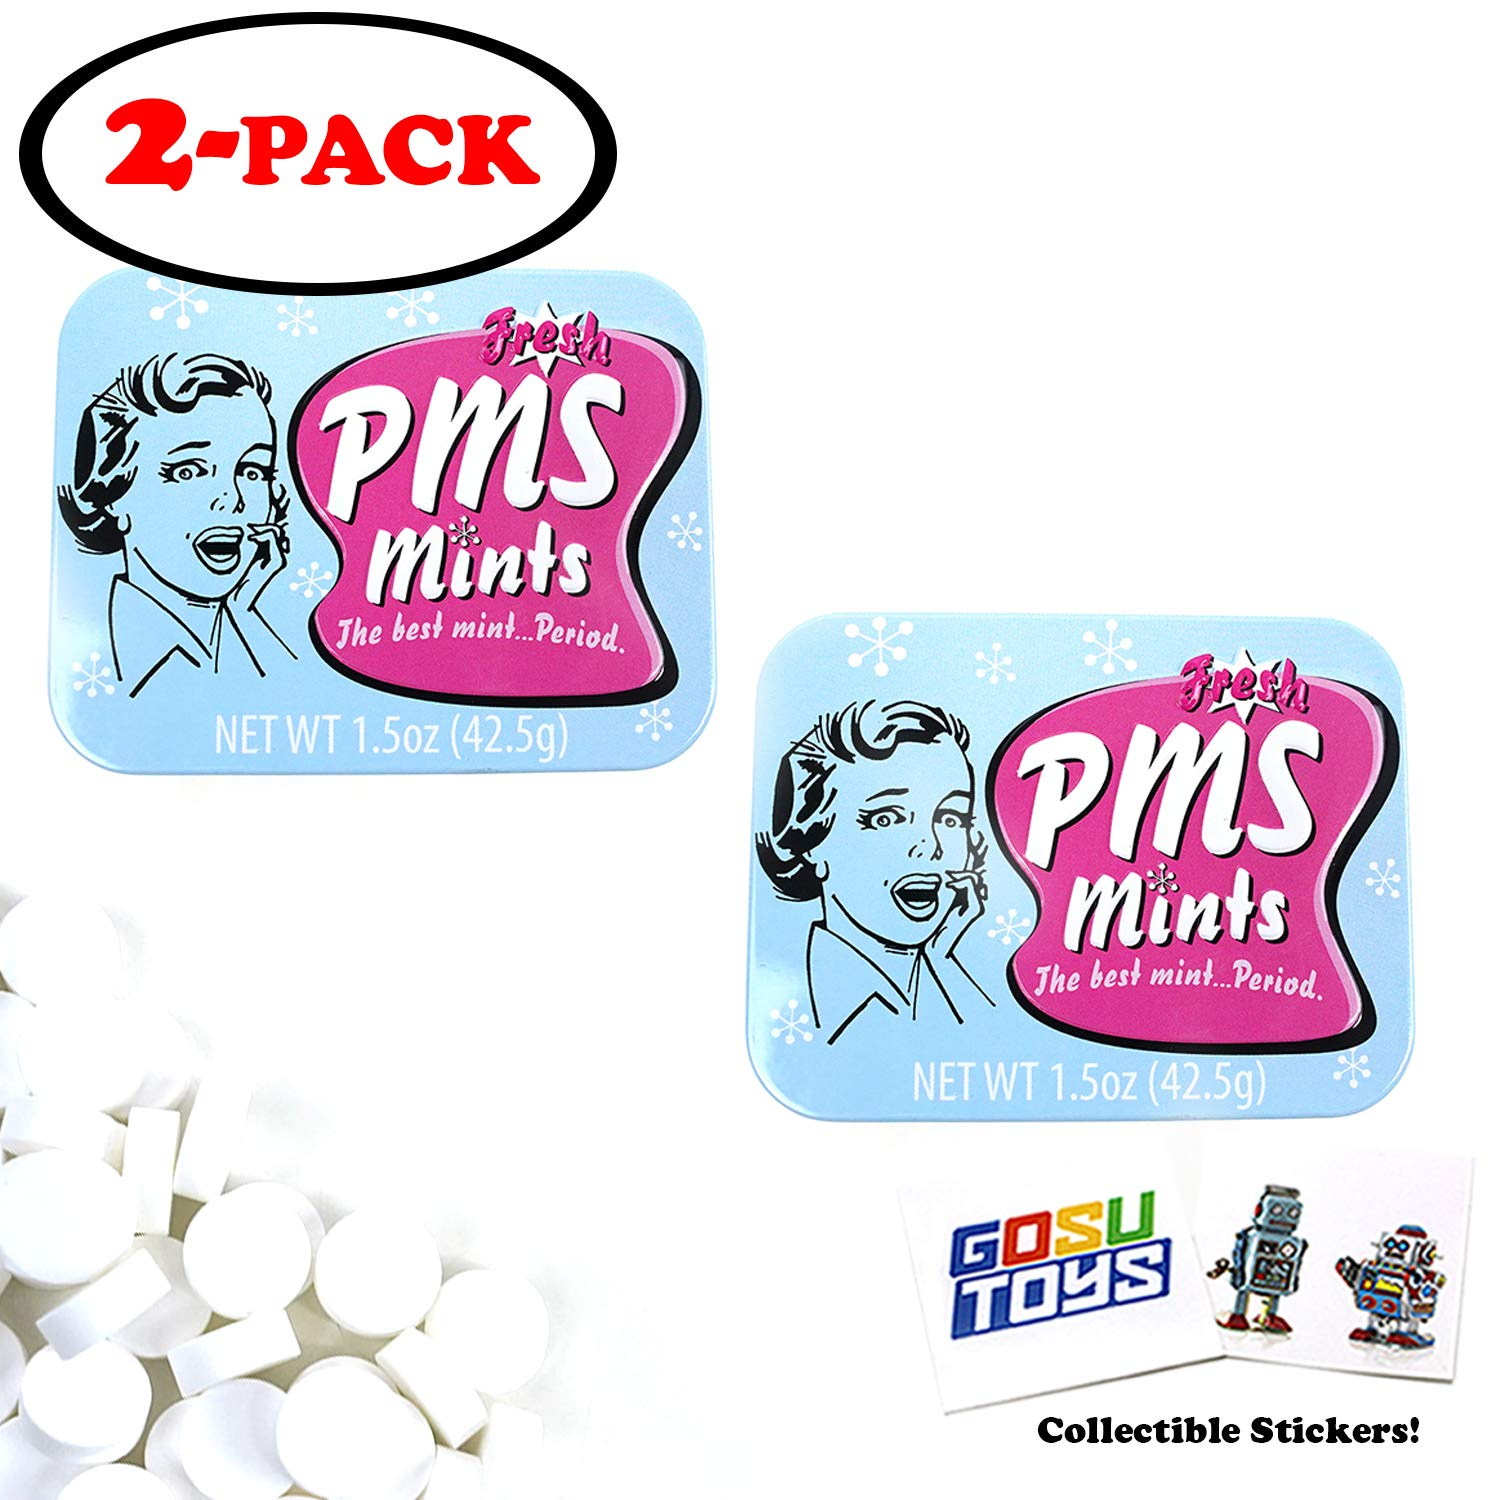 Fresh PMS Mints (2 Pack) with 2 GosuToys Stickers